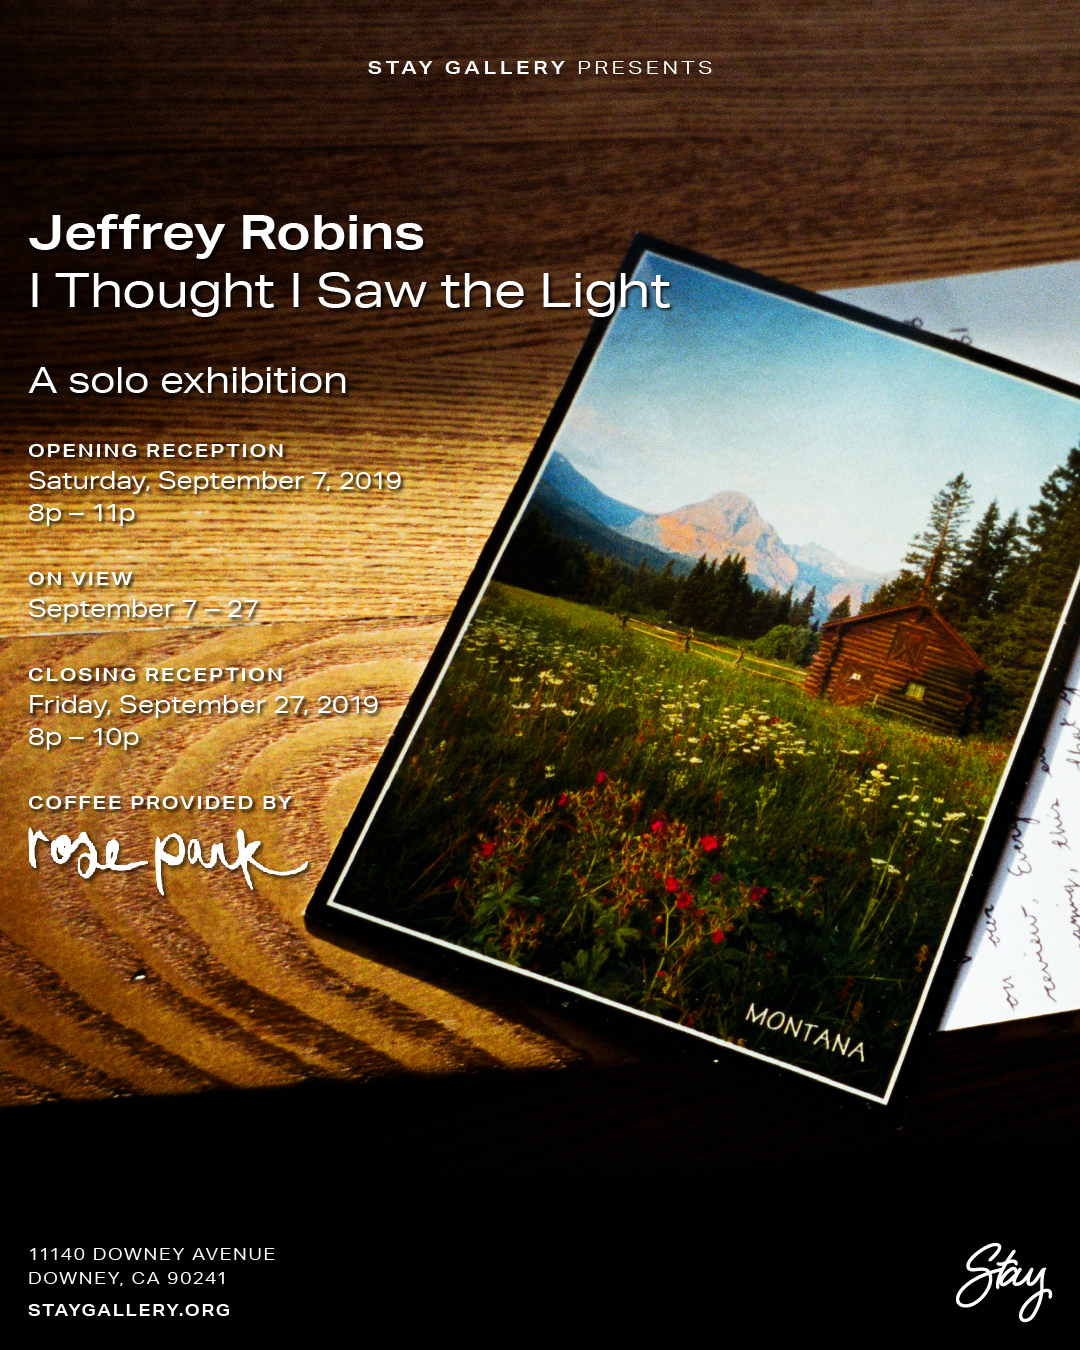 stay-gallery-jeffrey-robins-flyer.jpg